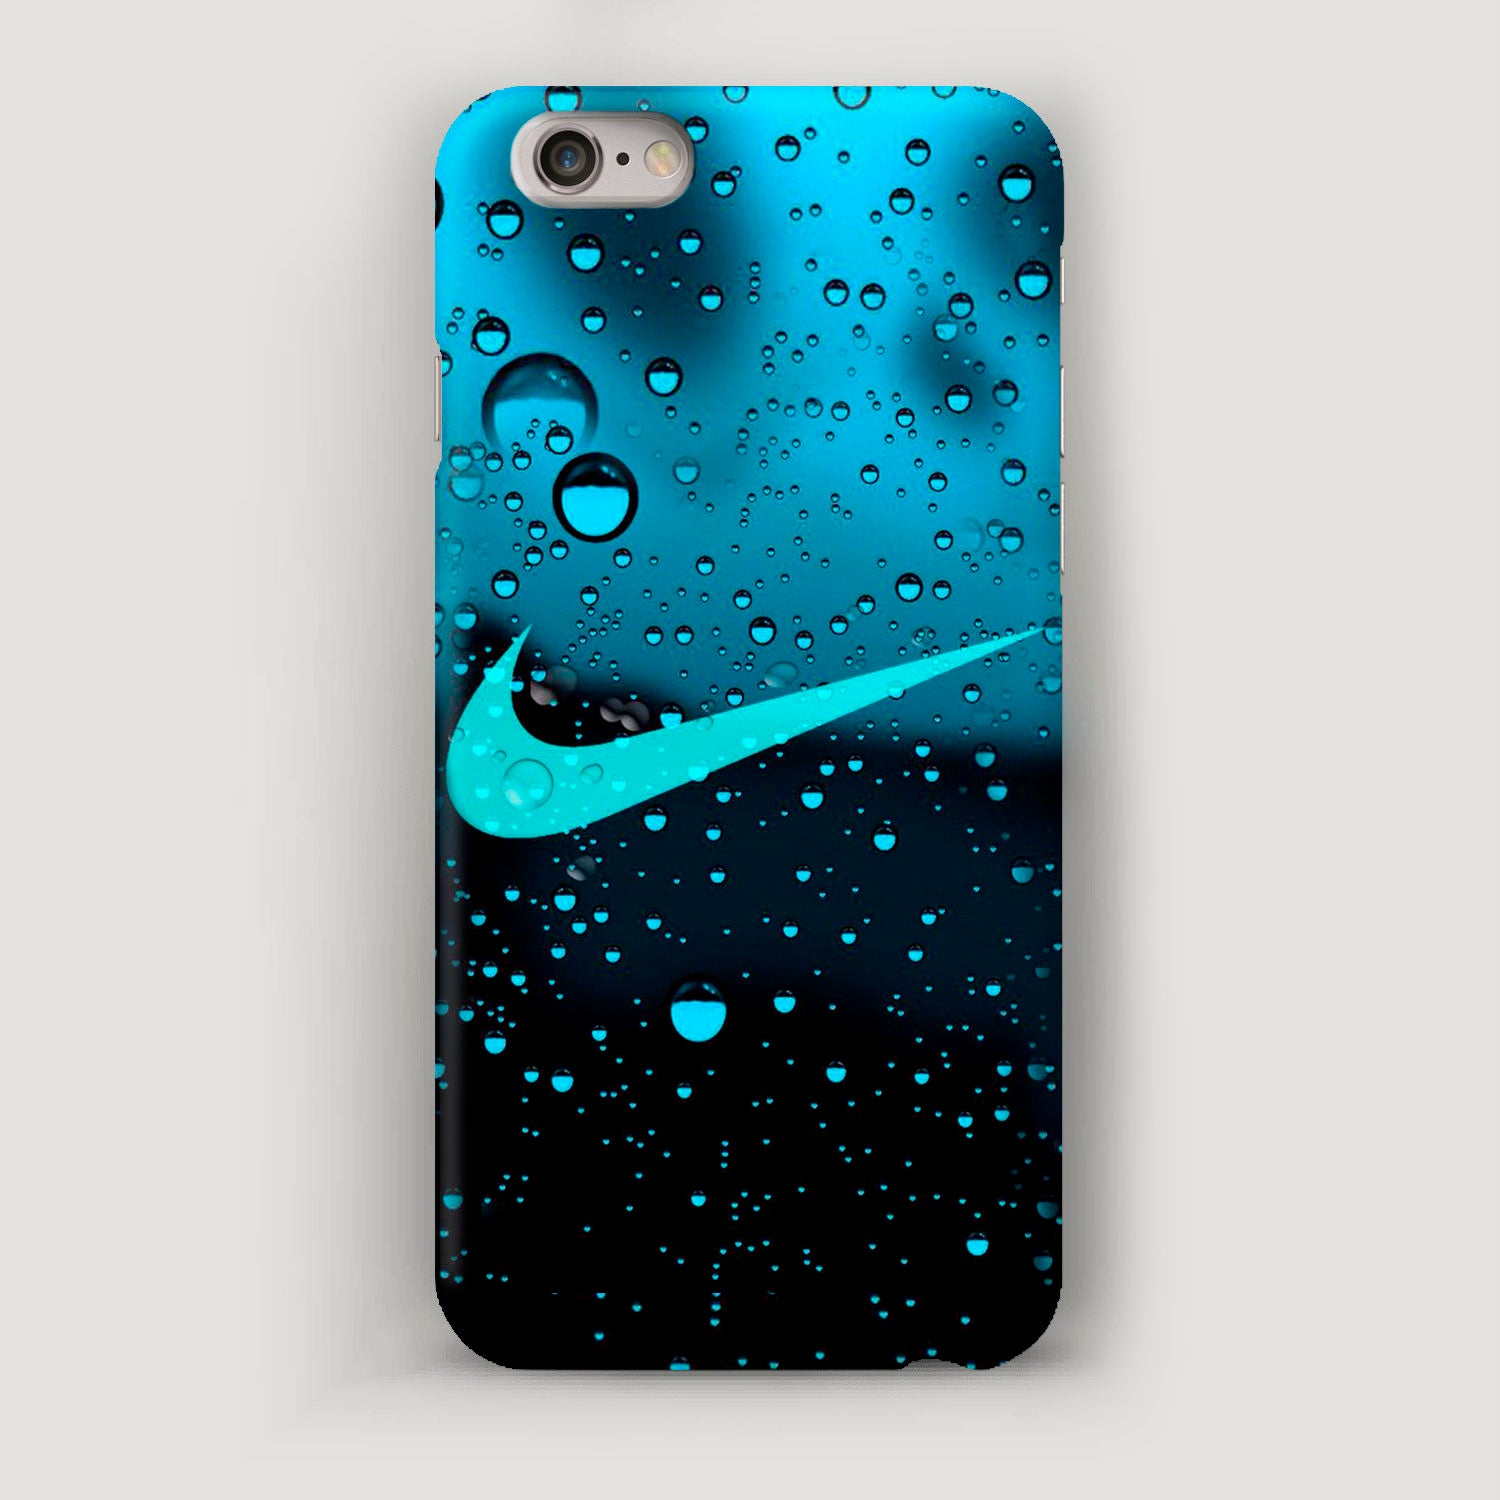 Nike IPhone 5c Case Cell Phone Case for iPhone 5c Black Nike ...